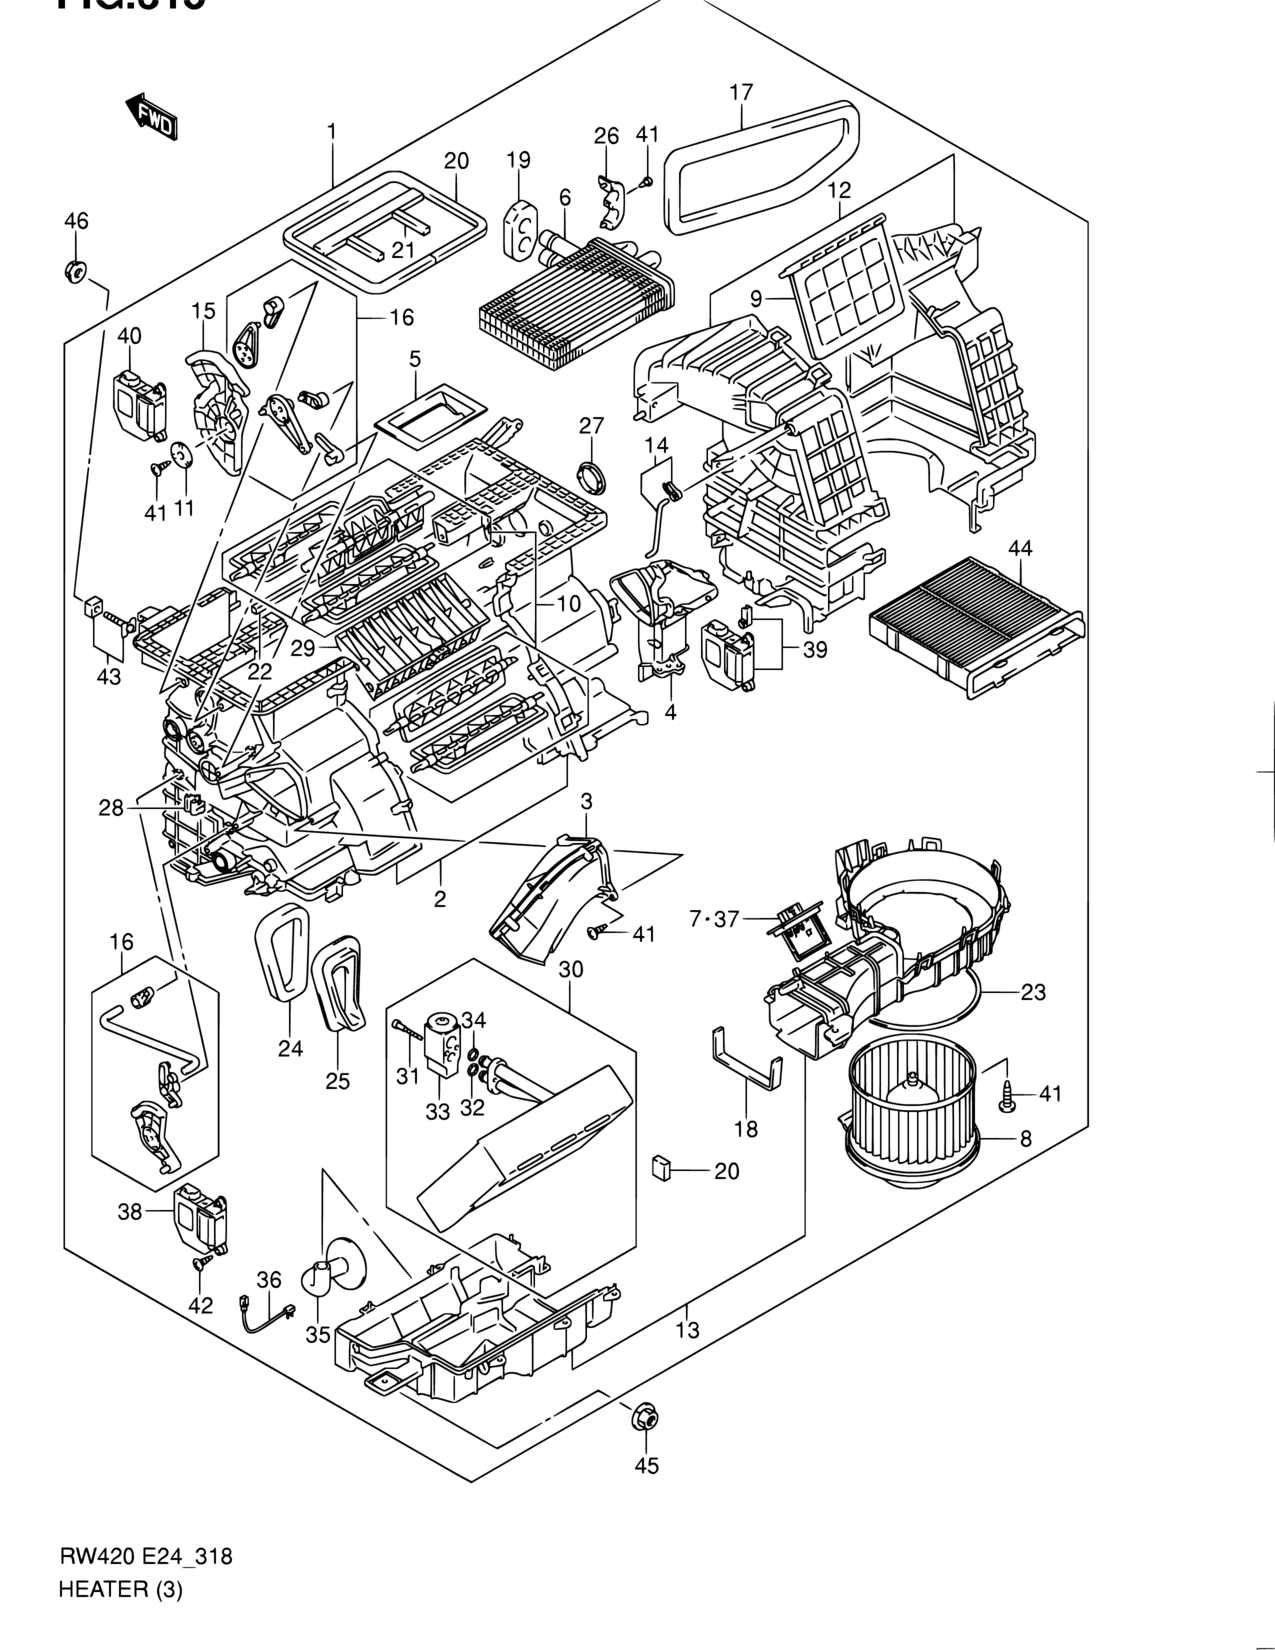 hight resolution of middle east sx4 rw416 6 e30 e38 interior trim 318 heater doors heater and air conditioning heater on e30 heater hose diagram